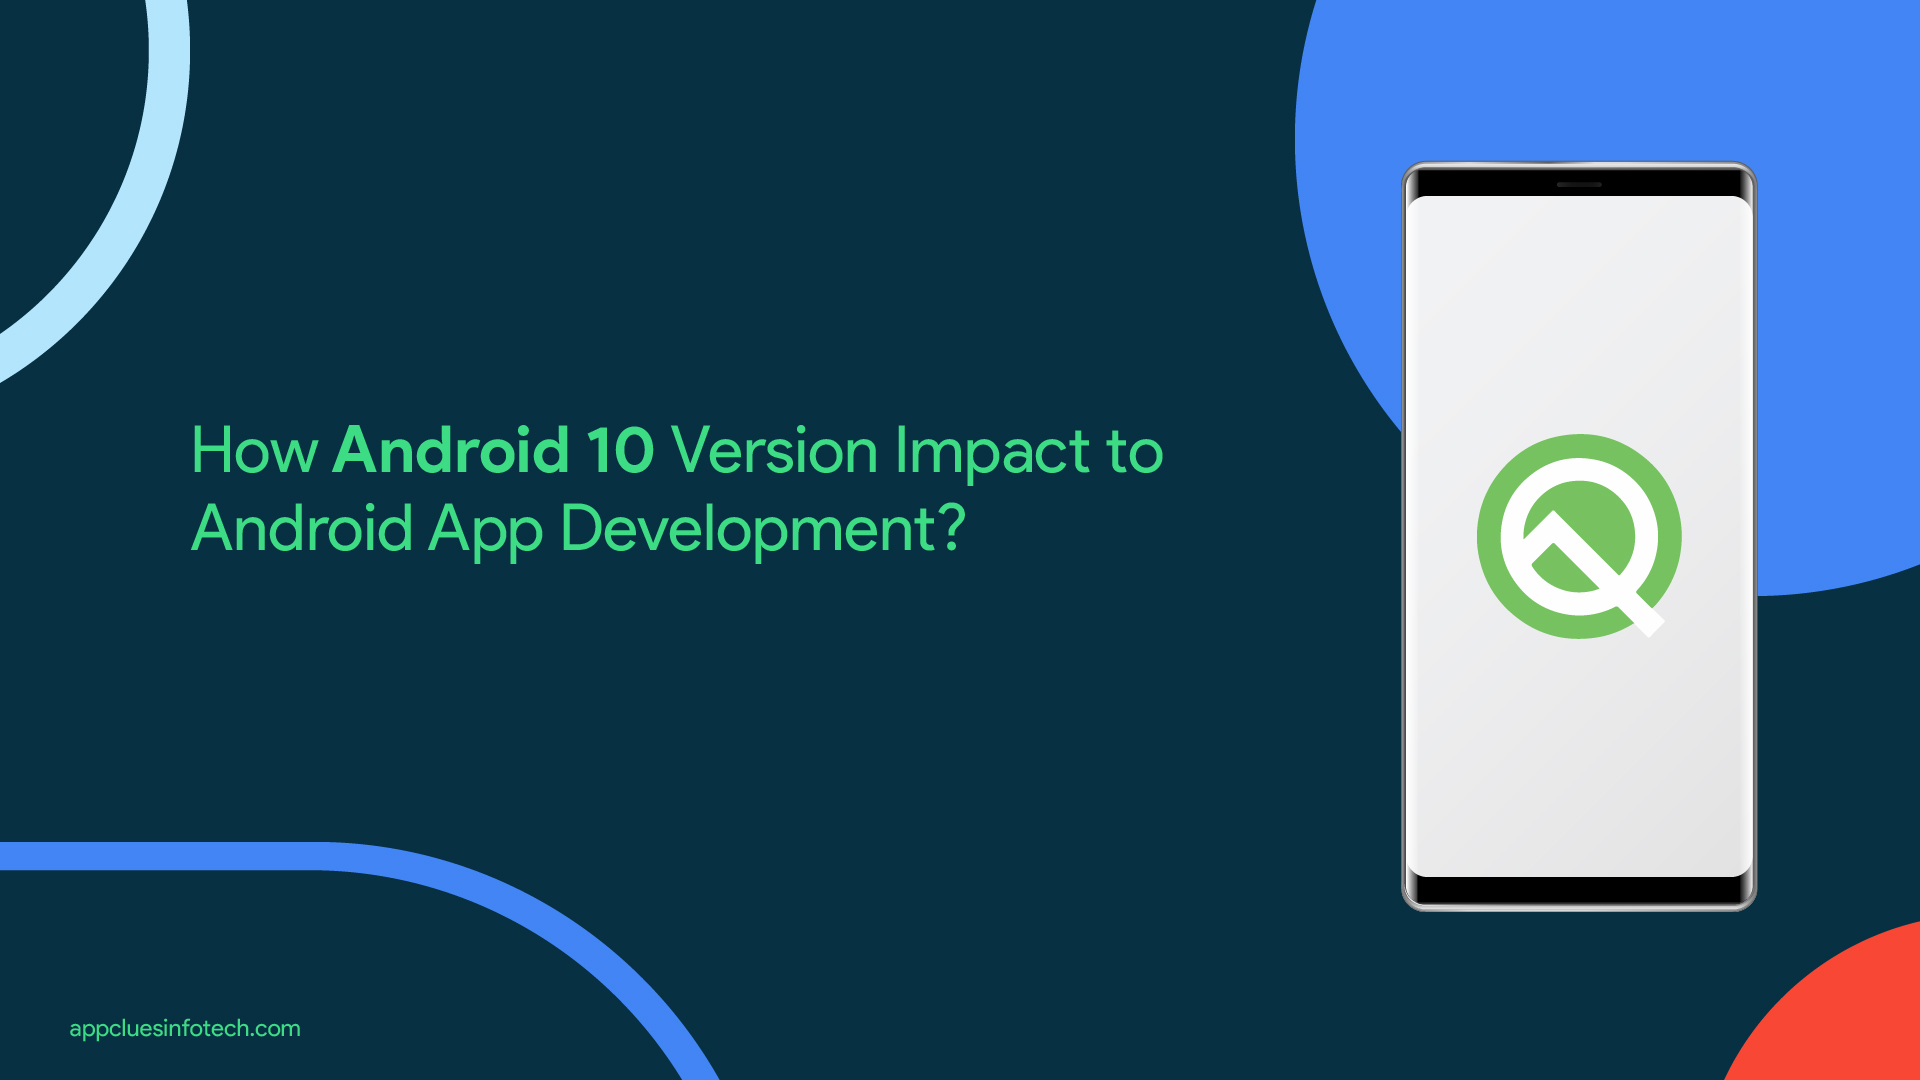 How Android 10 Version Impacts To Android App Development